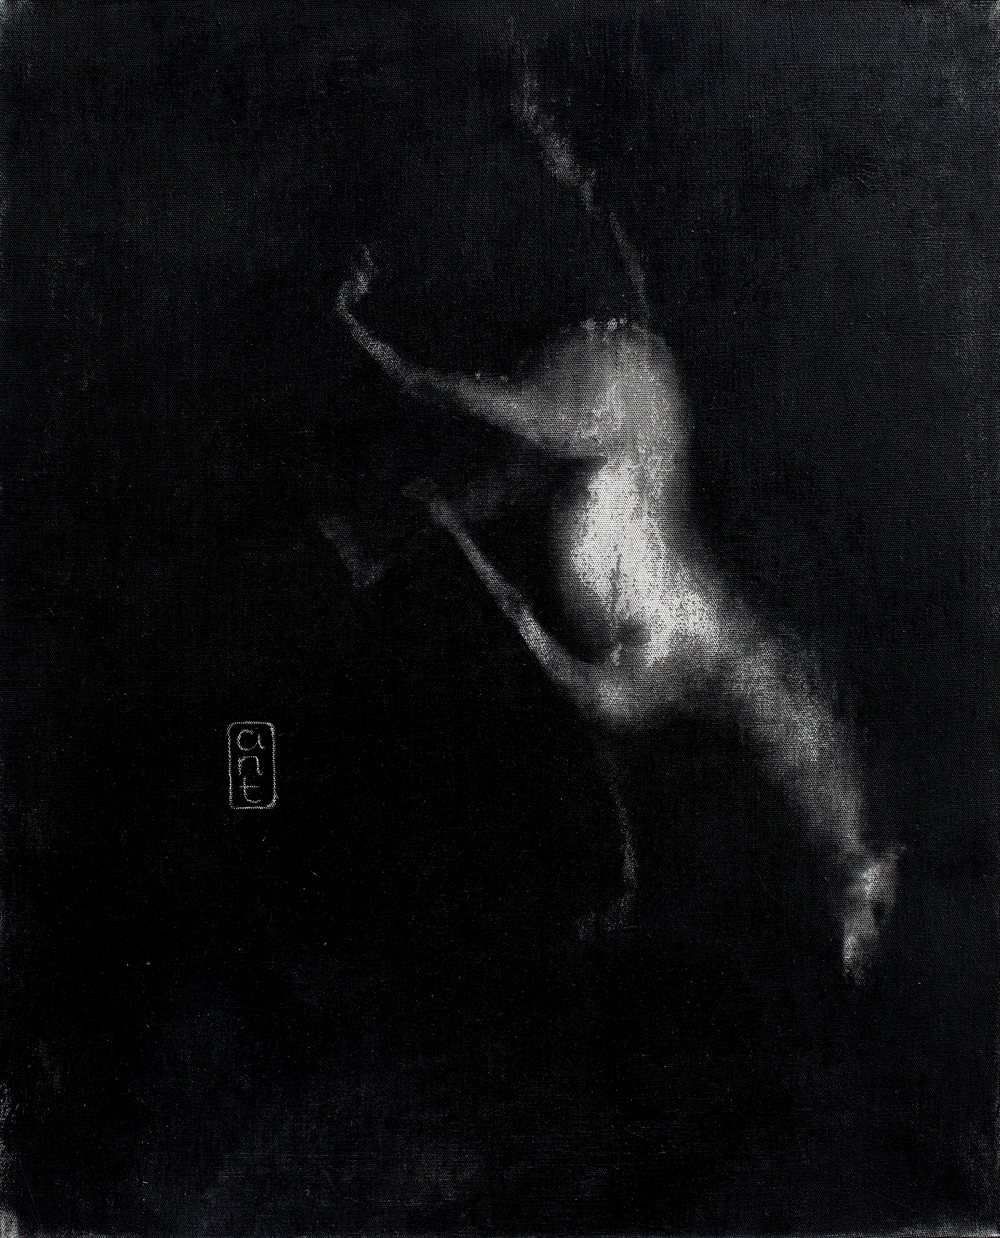 2010. Falling Horses: Chloe, Pigment & Gesso on Linen. 800 x 650mm.